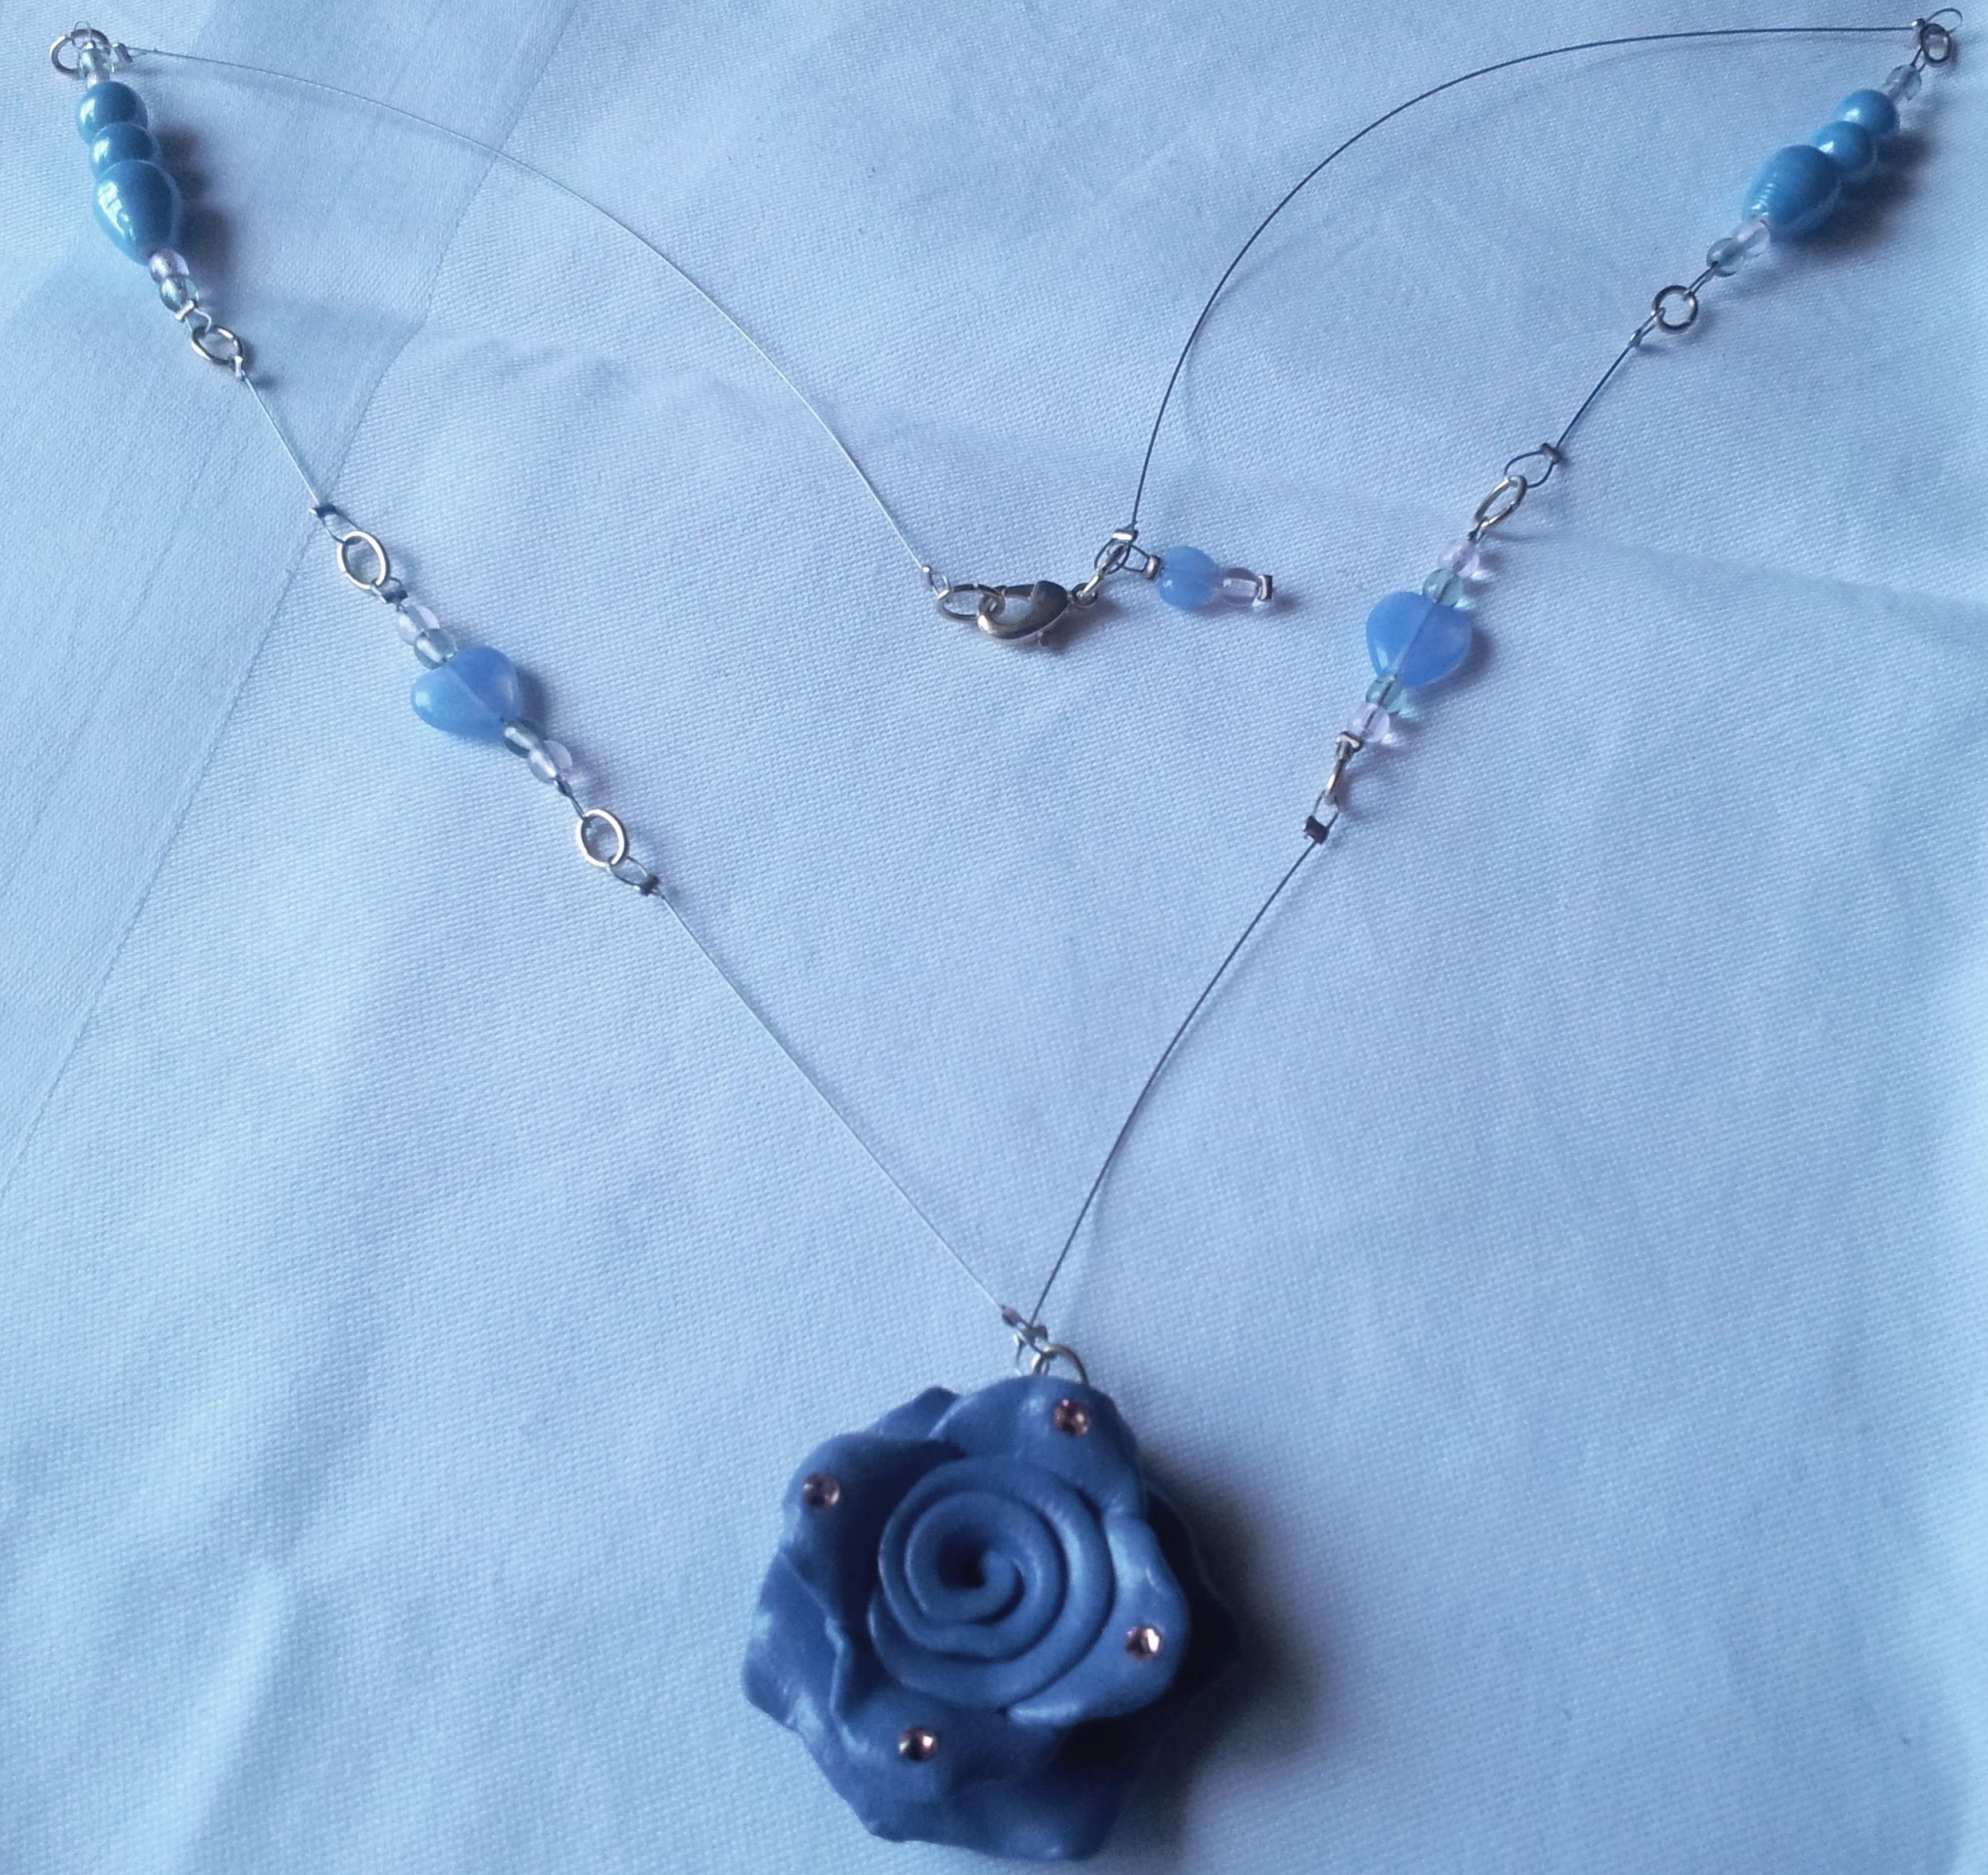 This amazing and stunningly gorgeous necklace is a one of a kind